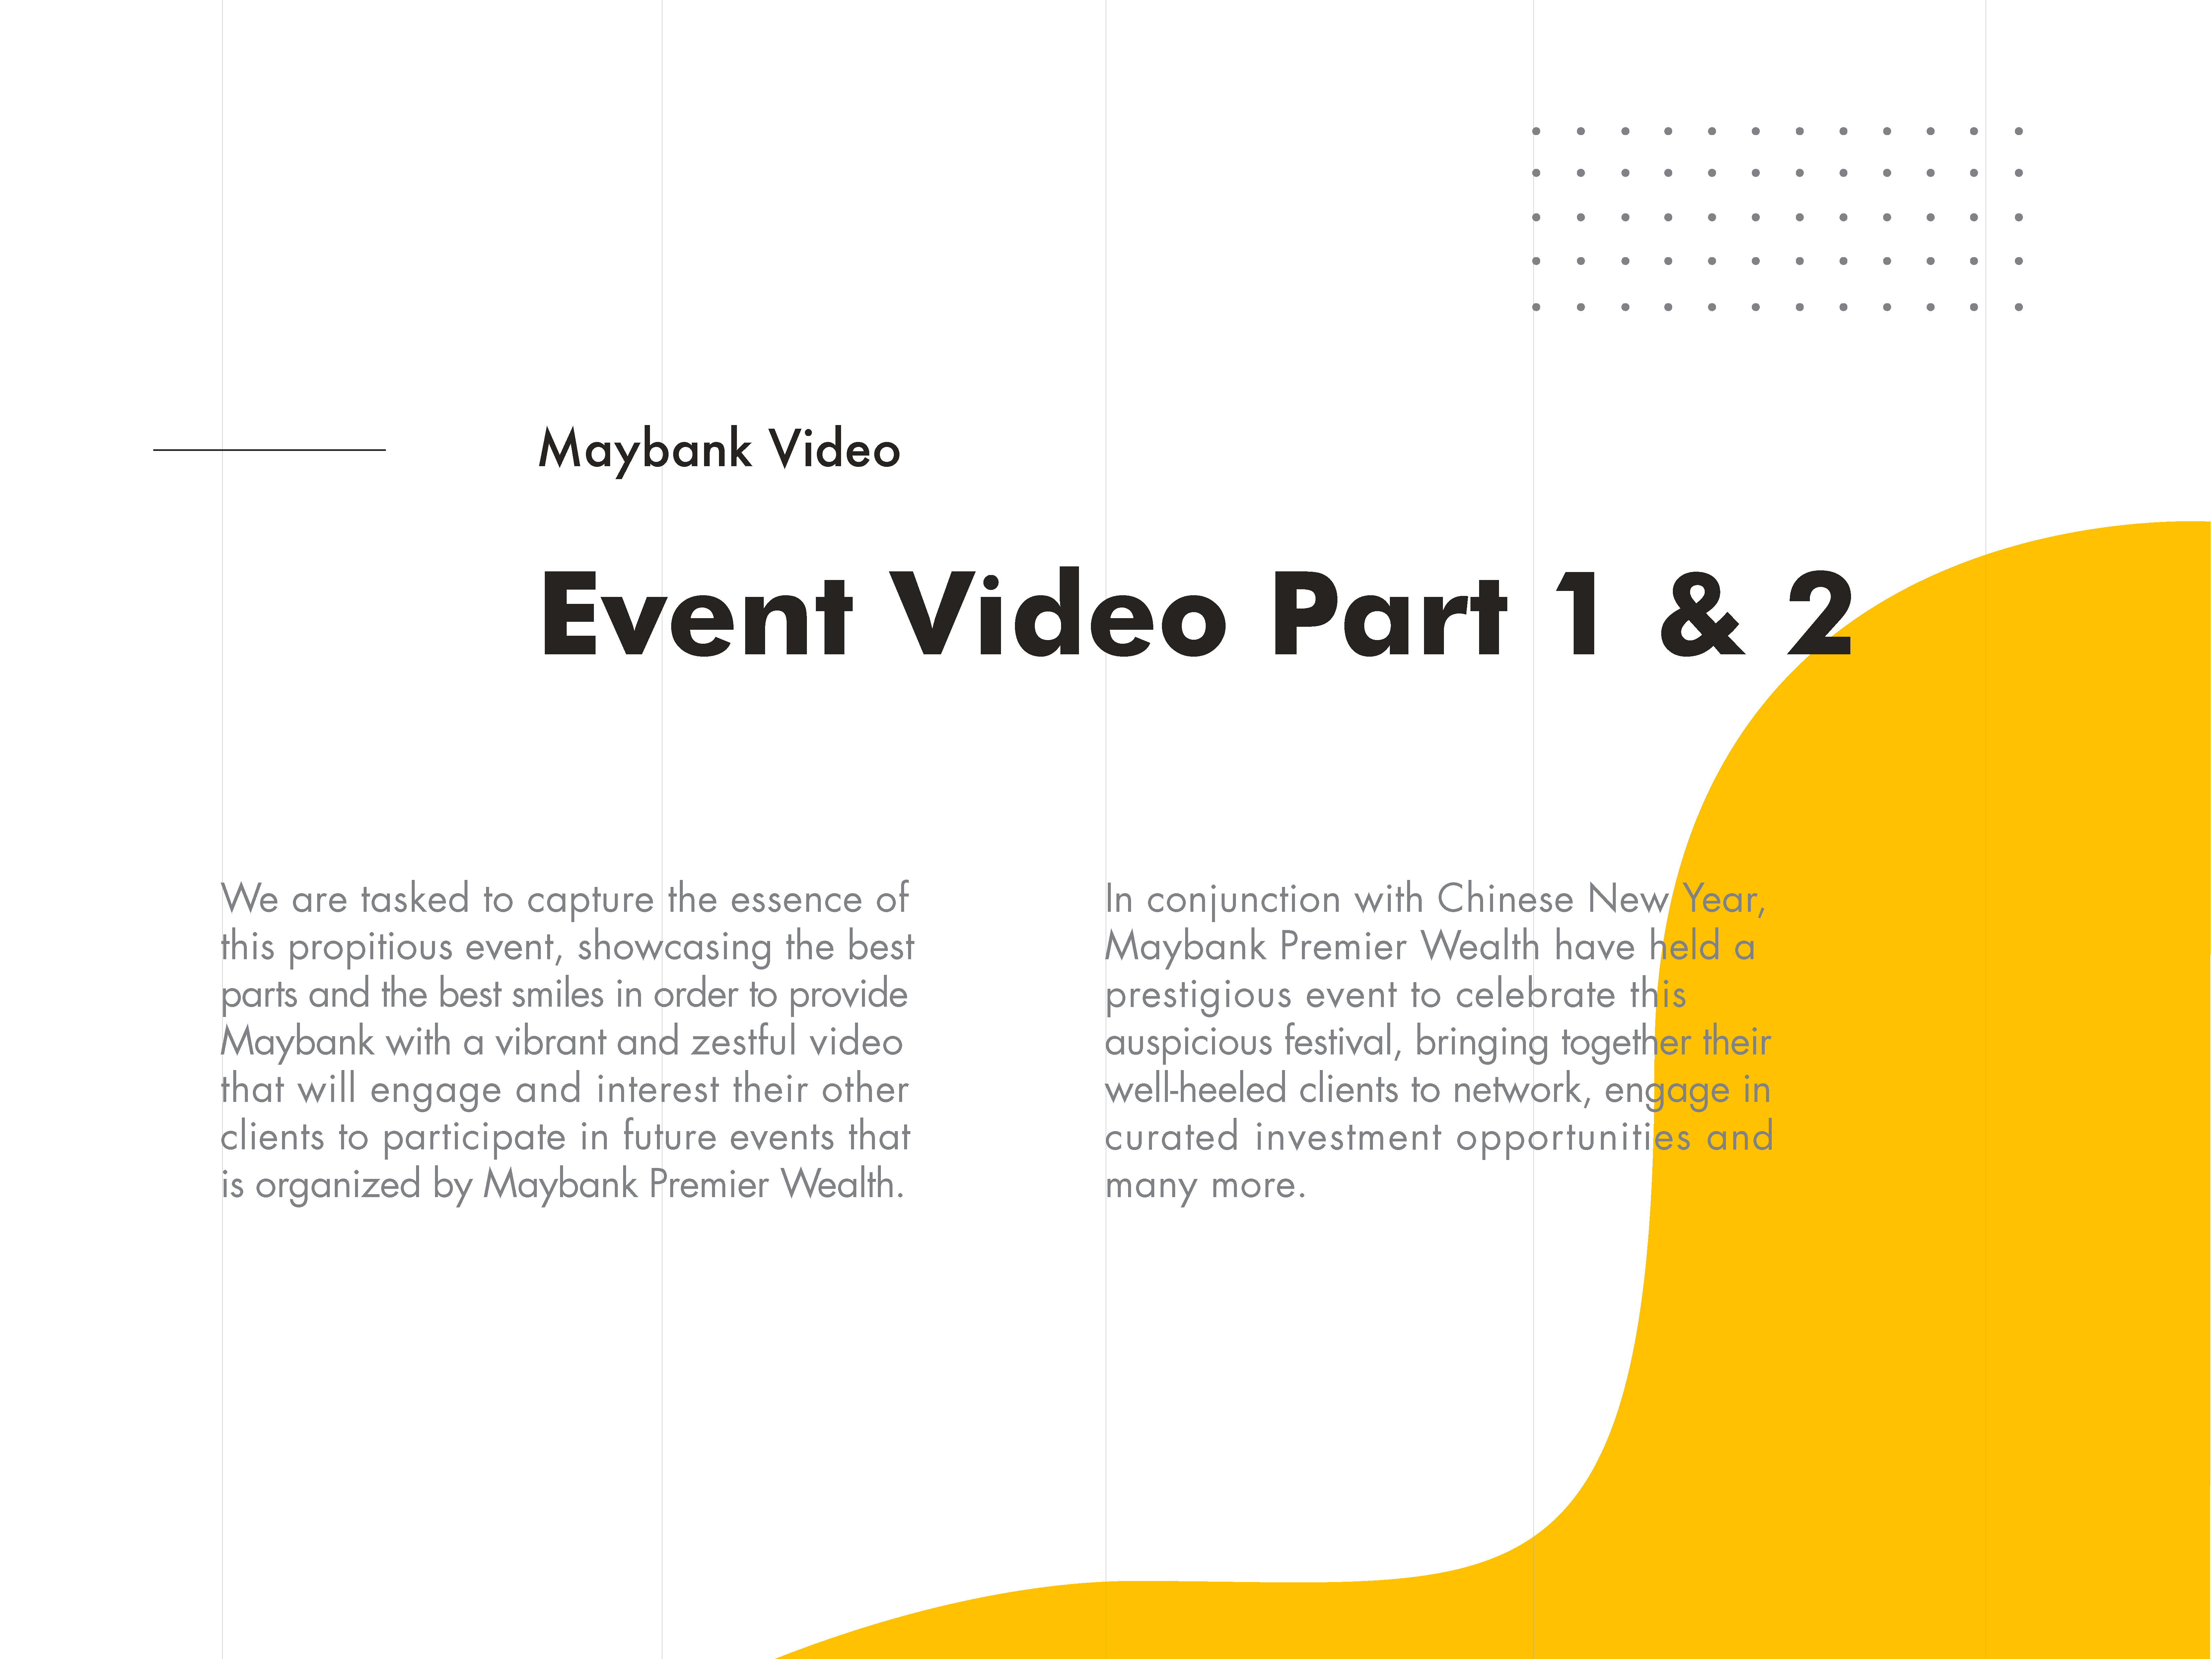 Maybank Premier Wealth Chinese New Year event video shooting and editing description